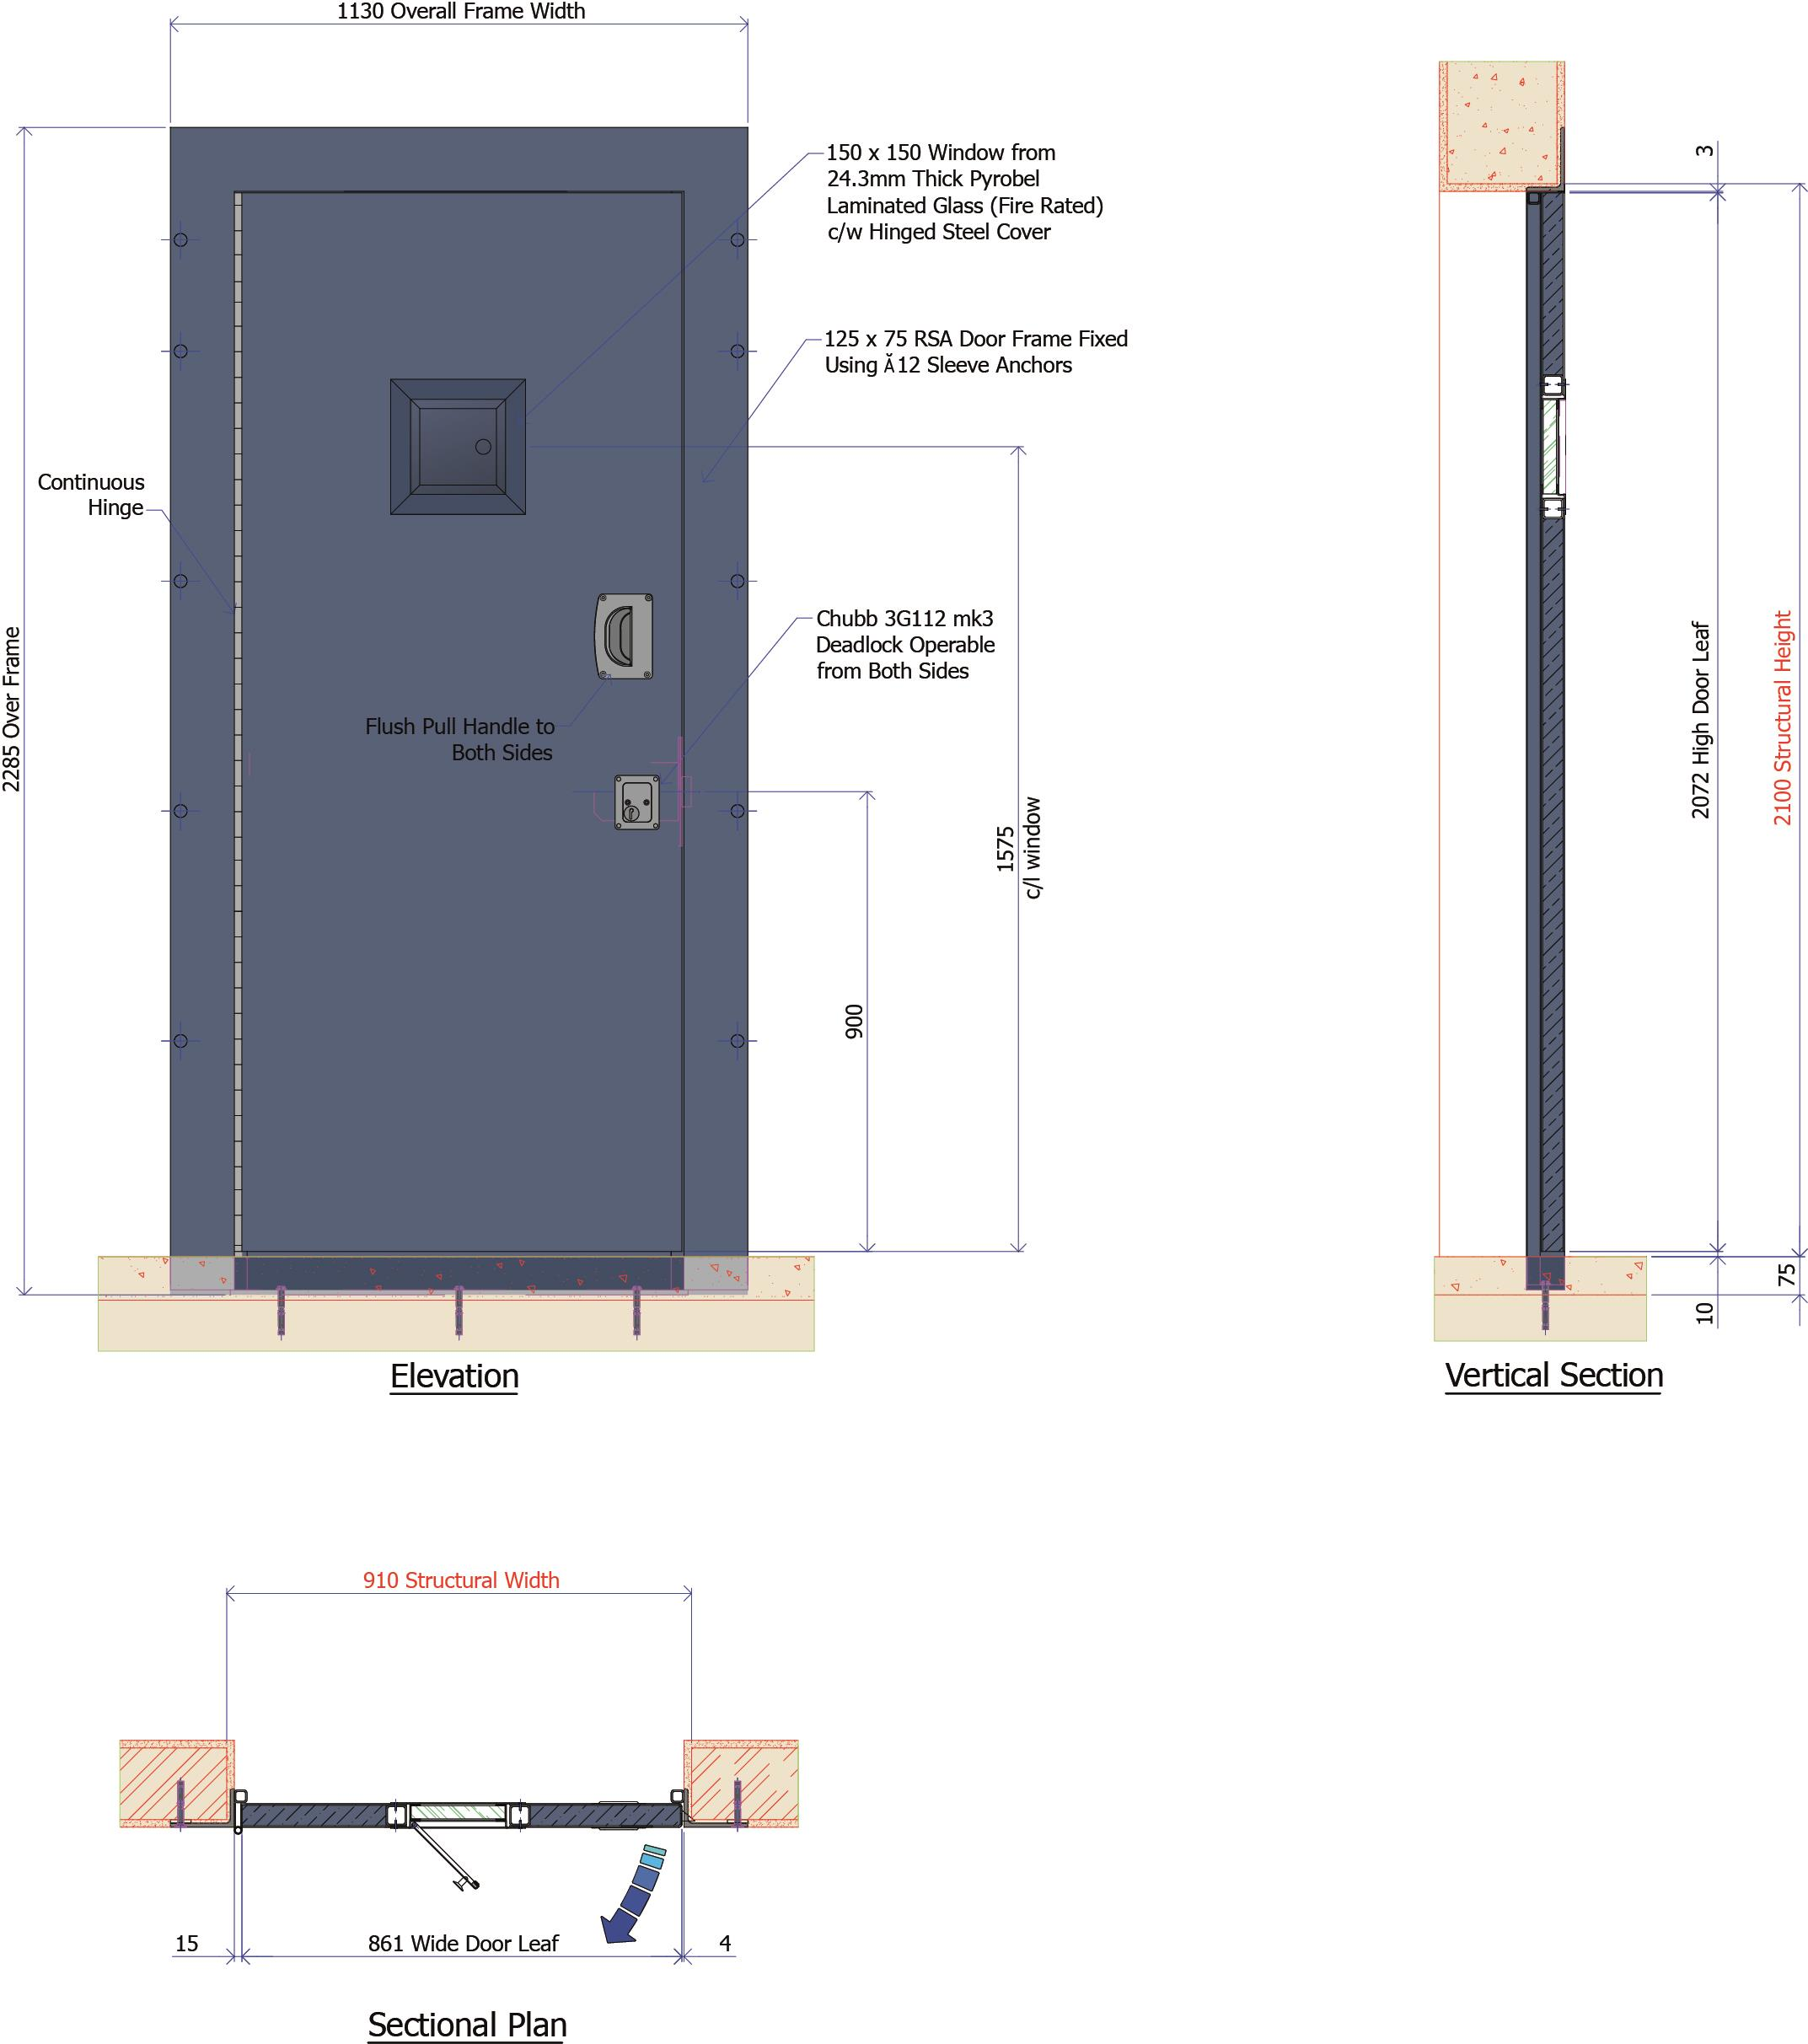 9D017B - Steel Fire Door 60 min Integrity